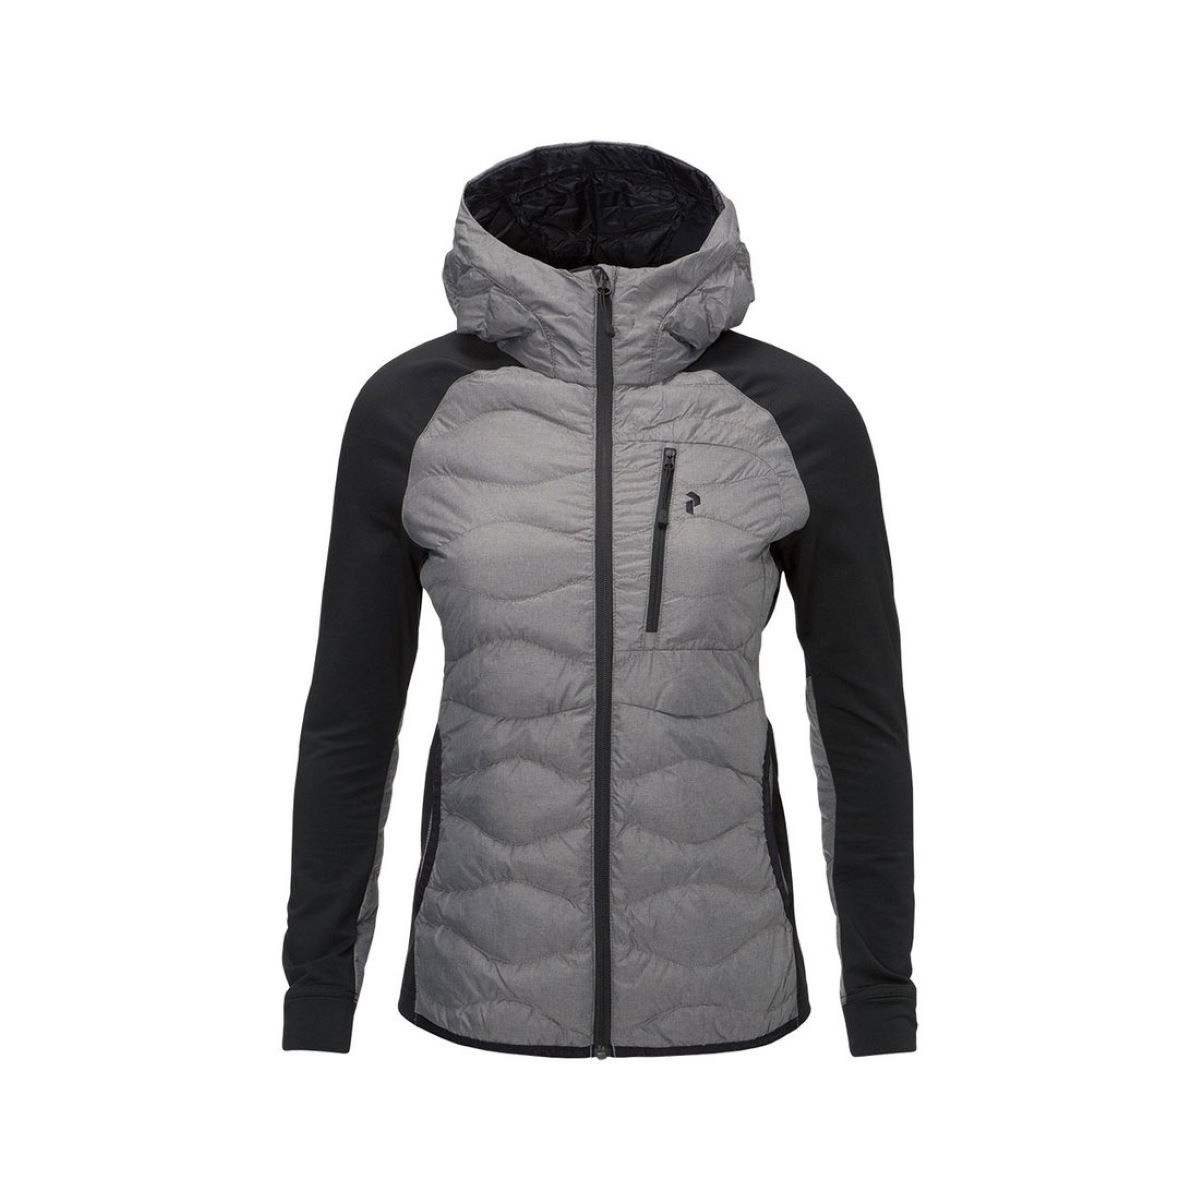 Peak Performance Women's Helium Hood Jacket Melange - Chaquetas